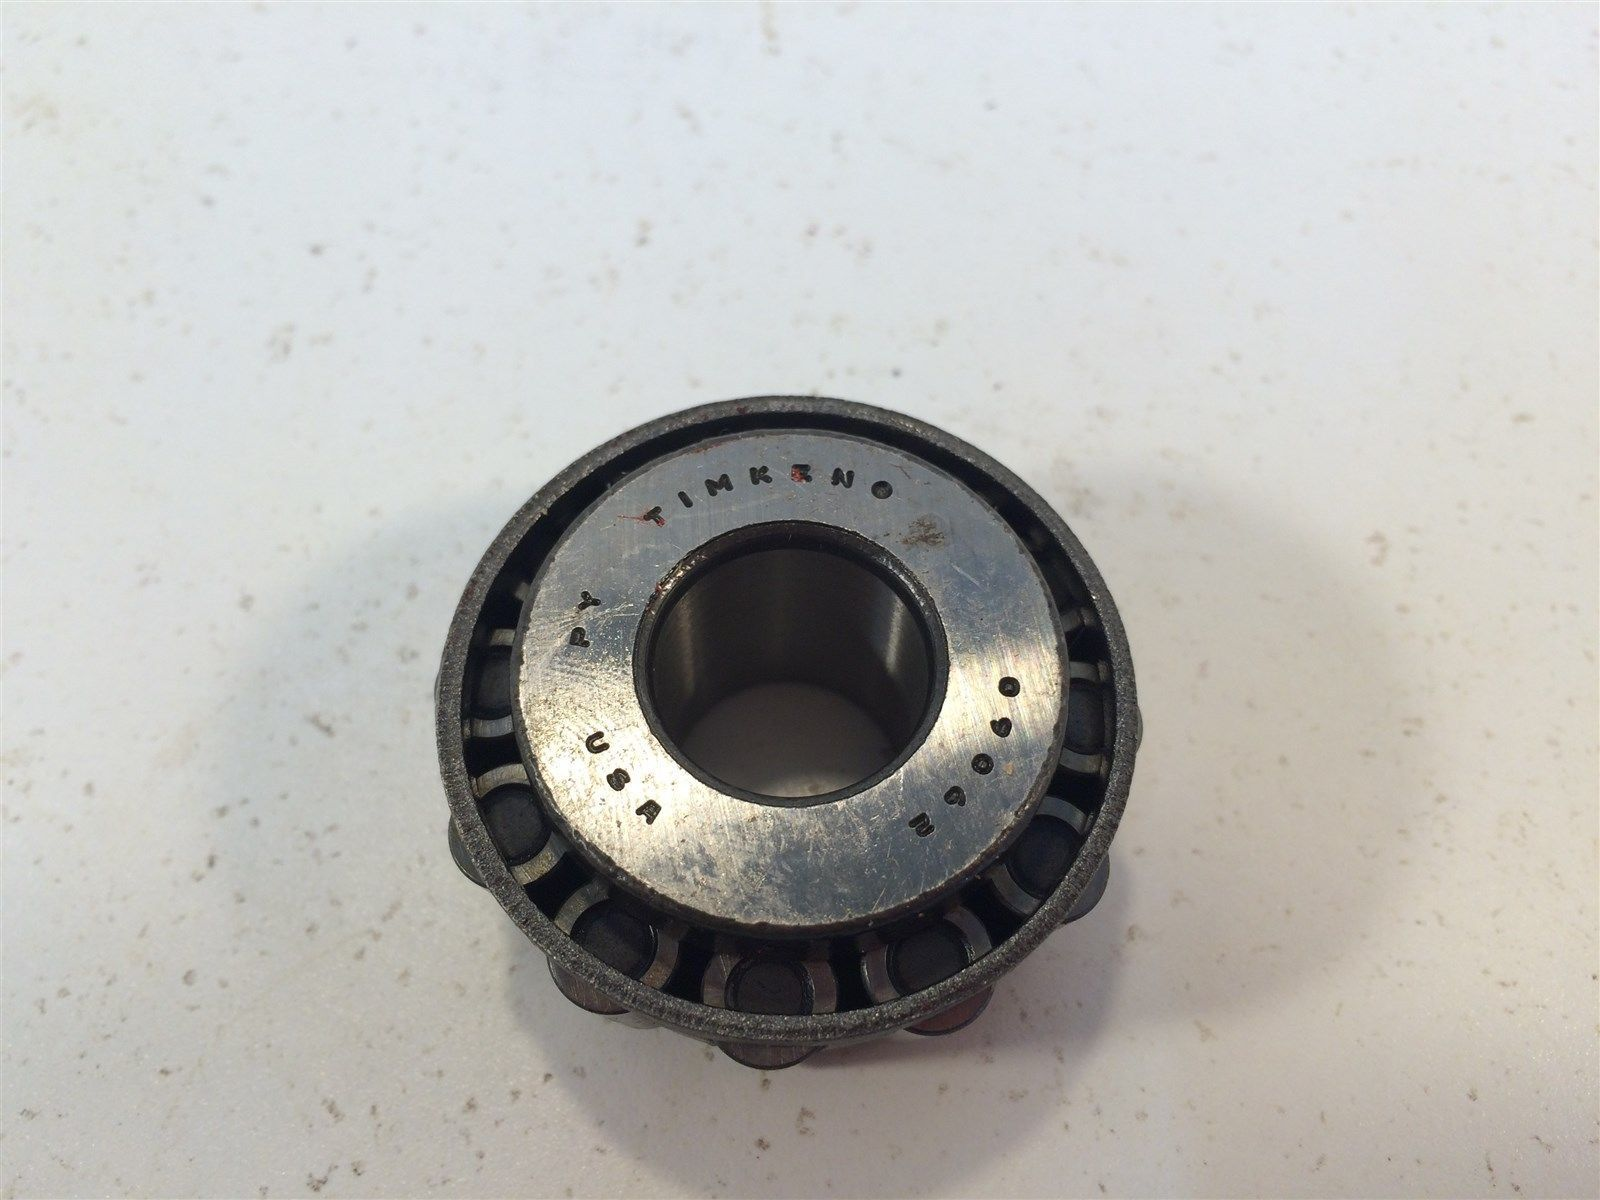 Timken Bearing Cup 09195 & Cone 09062 Made in USA